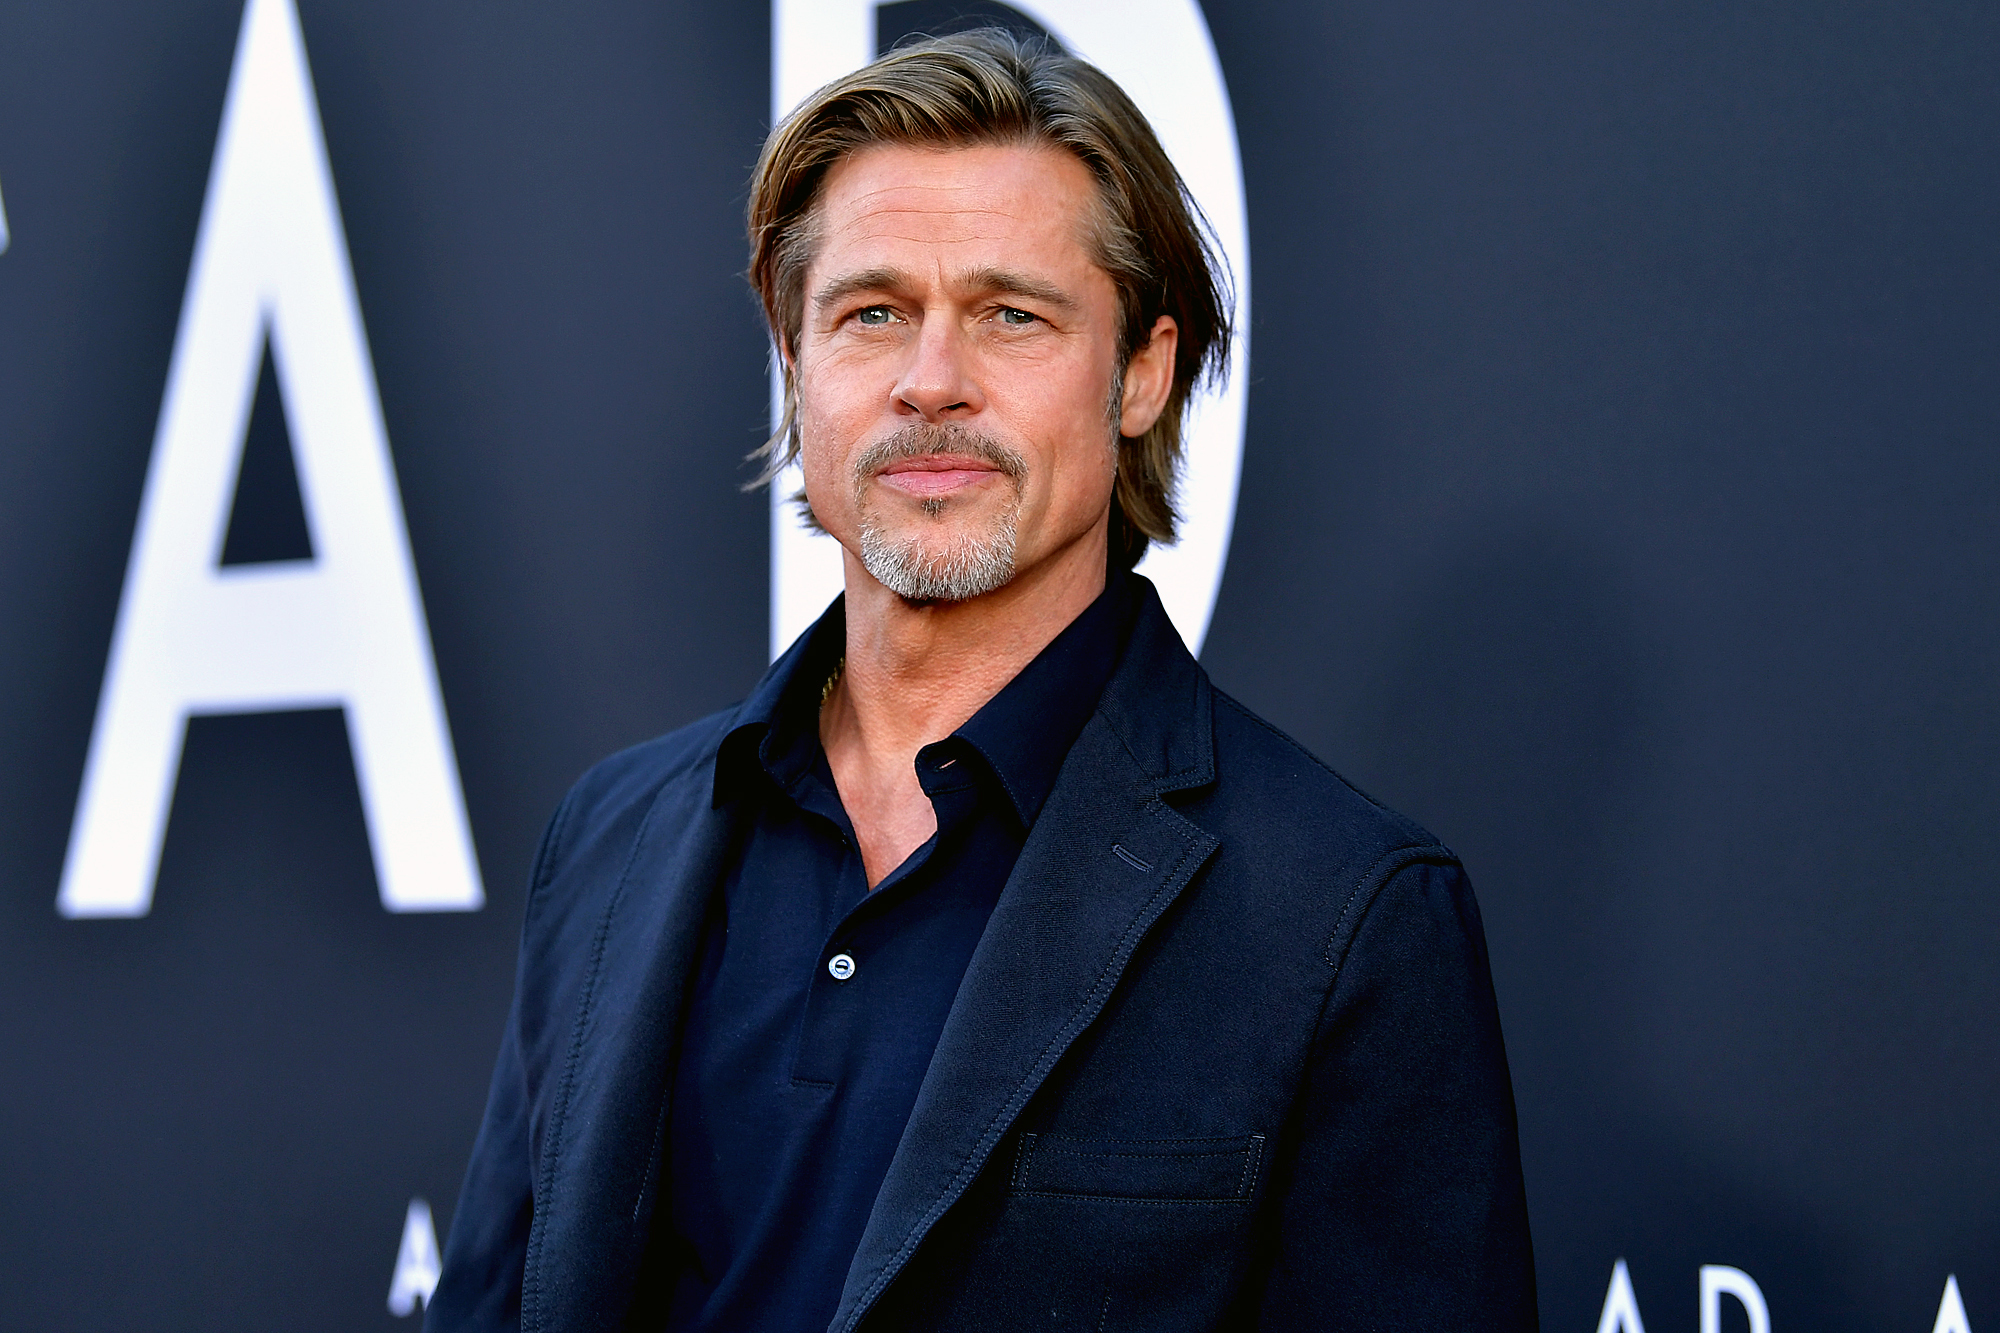 Brad Pitt no longer identifies as atheist, says he was just being 'rebellious'.